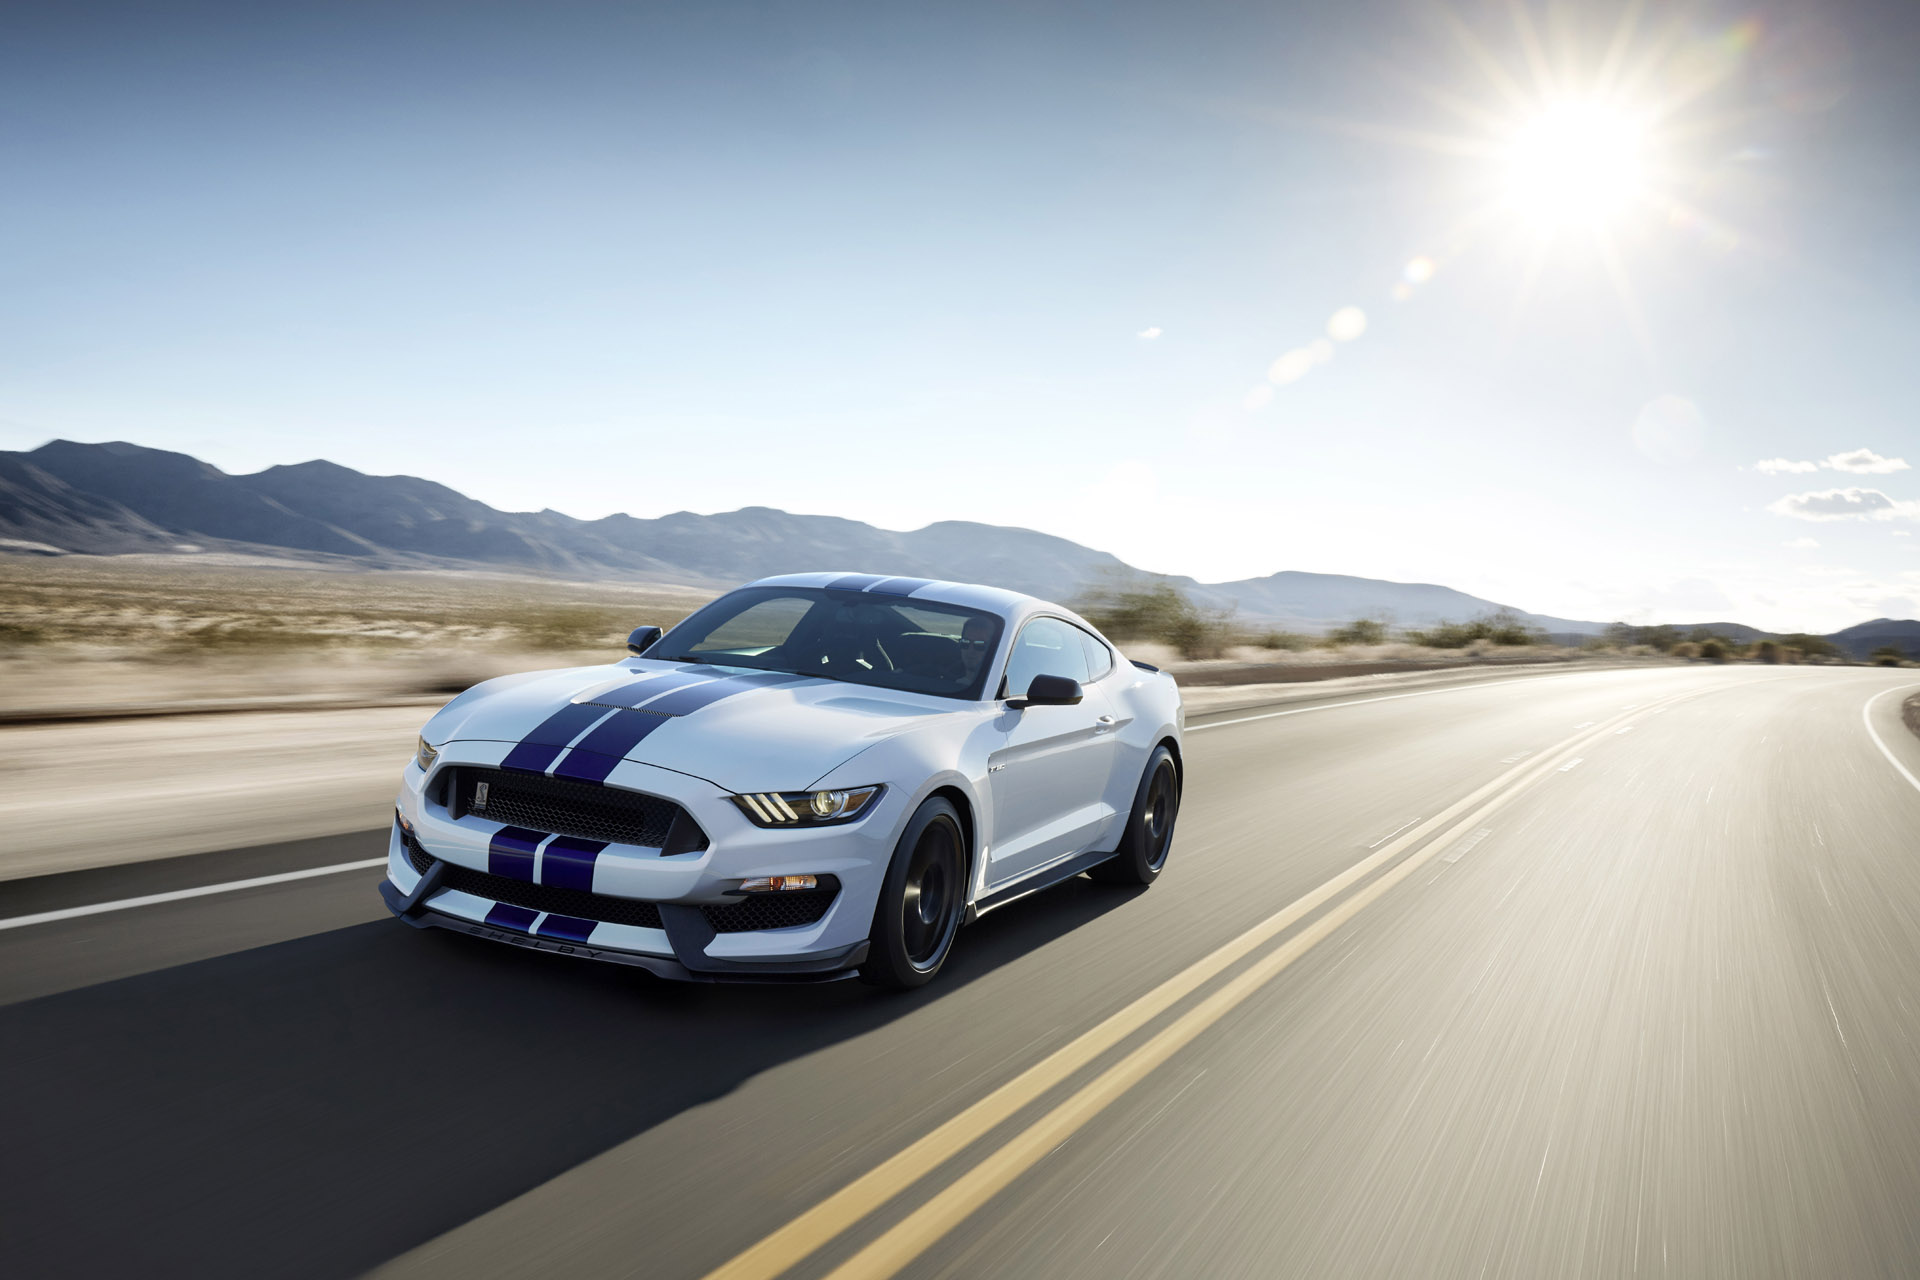 The All-new Shelby GT350 Mustang in Oxford White with a Sonic Blue stripe.